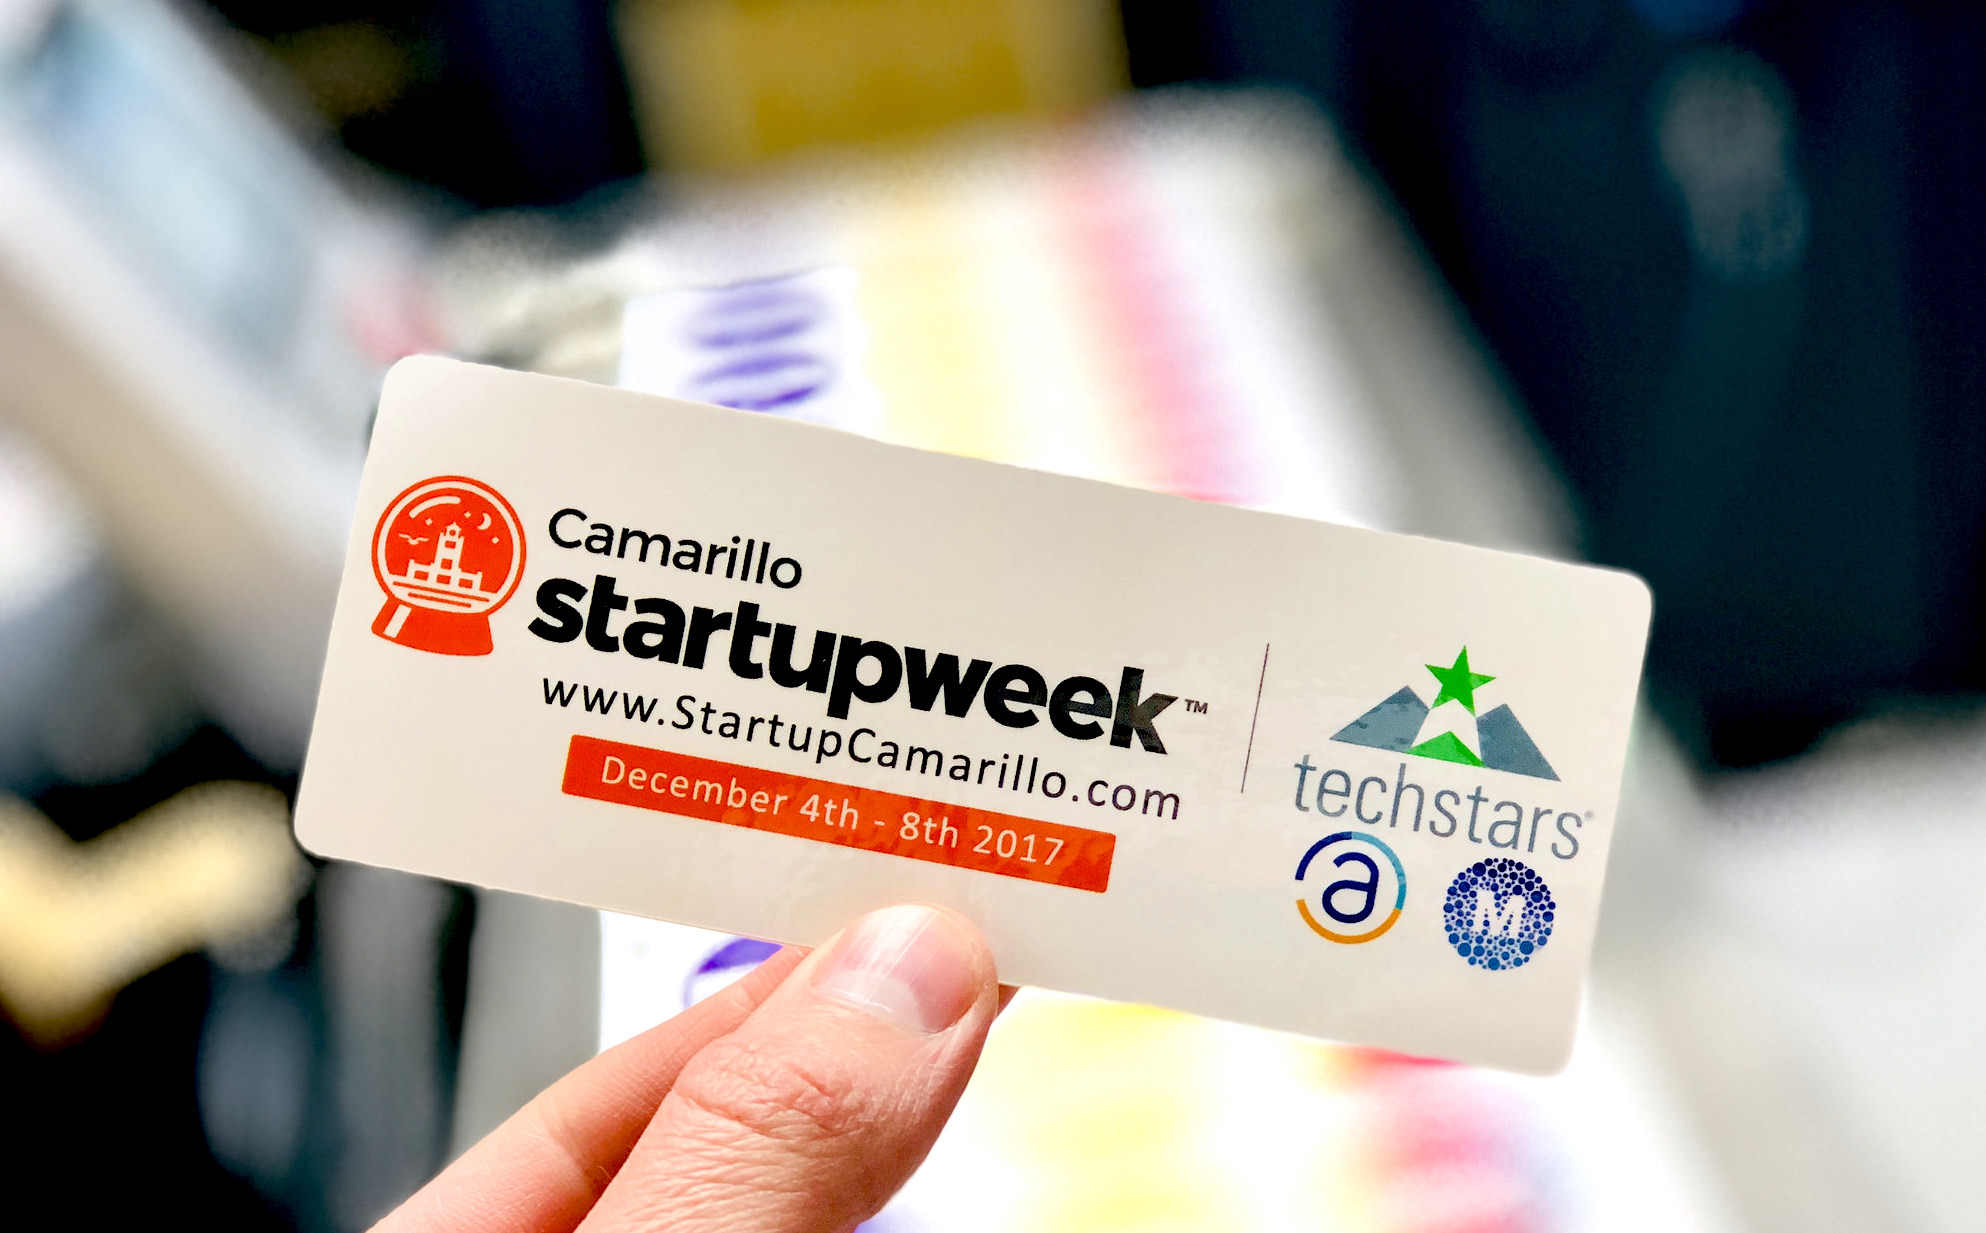 Camarillo Startup Week 2017 Die Cut Sticker